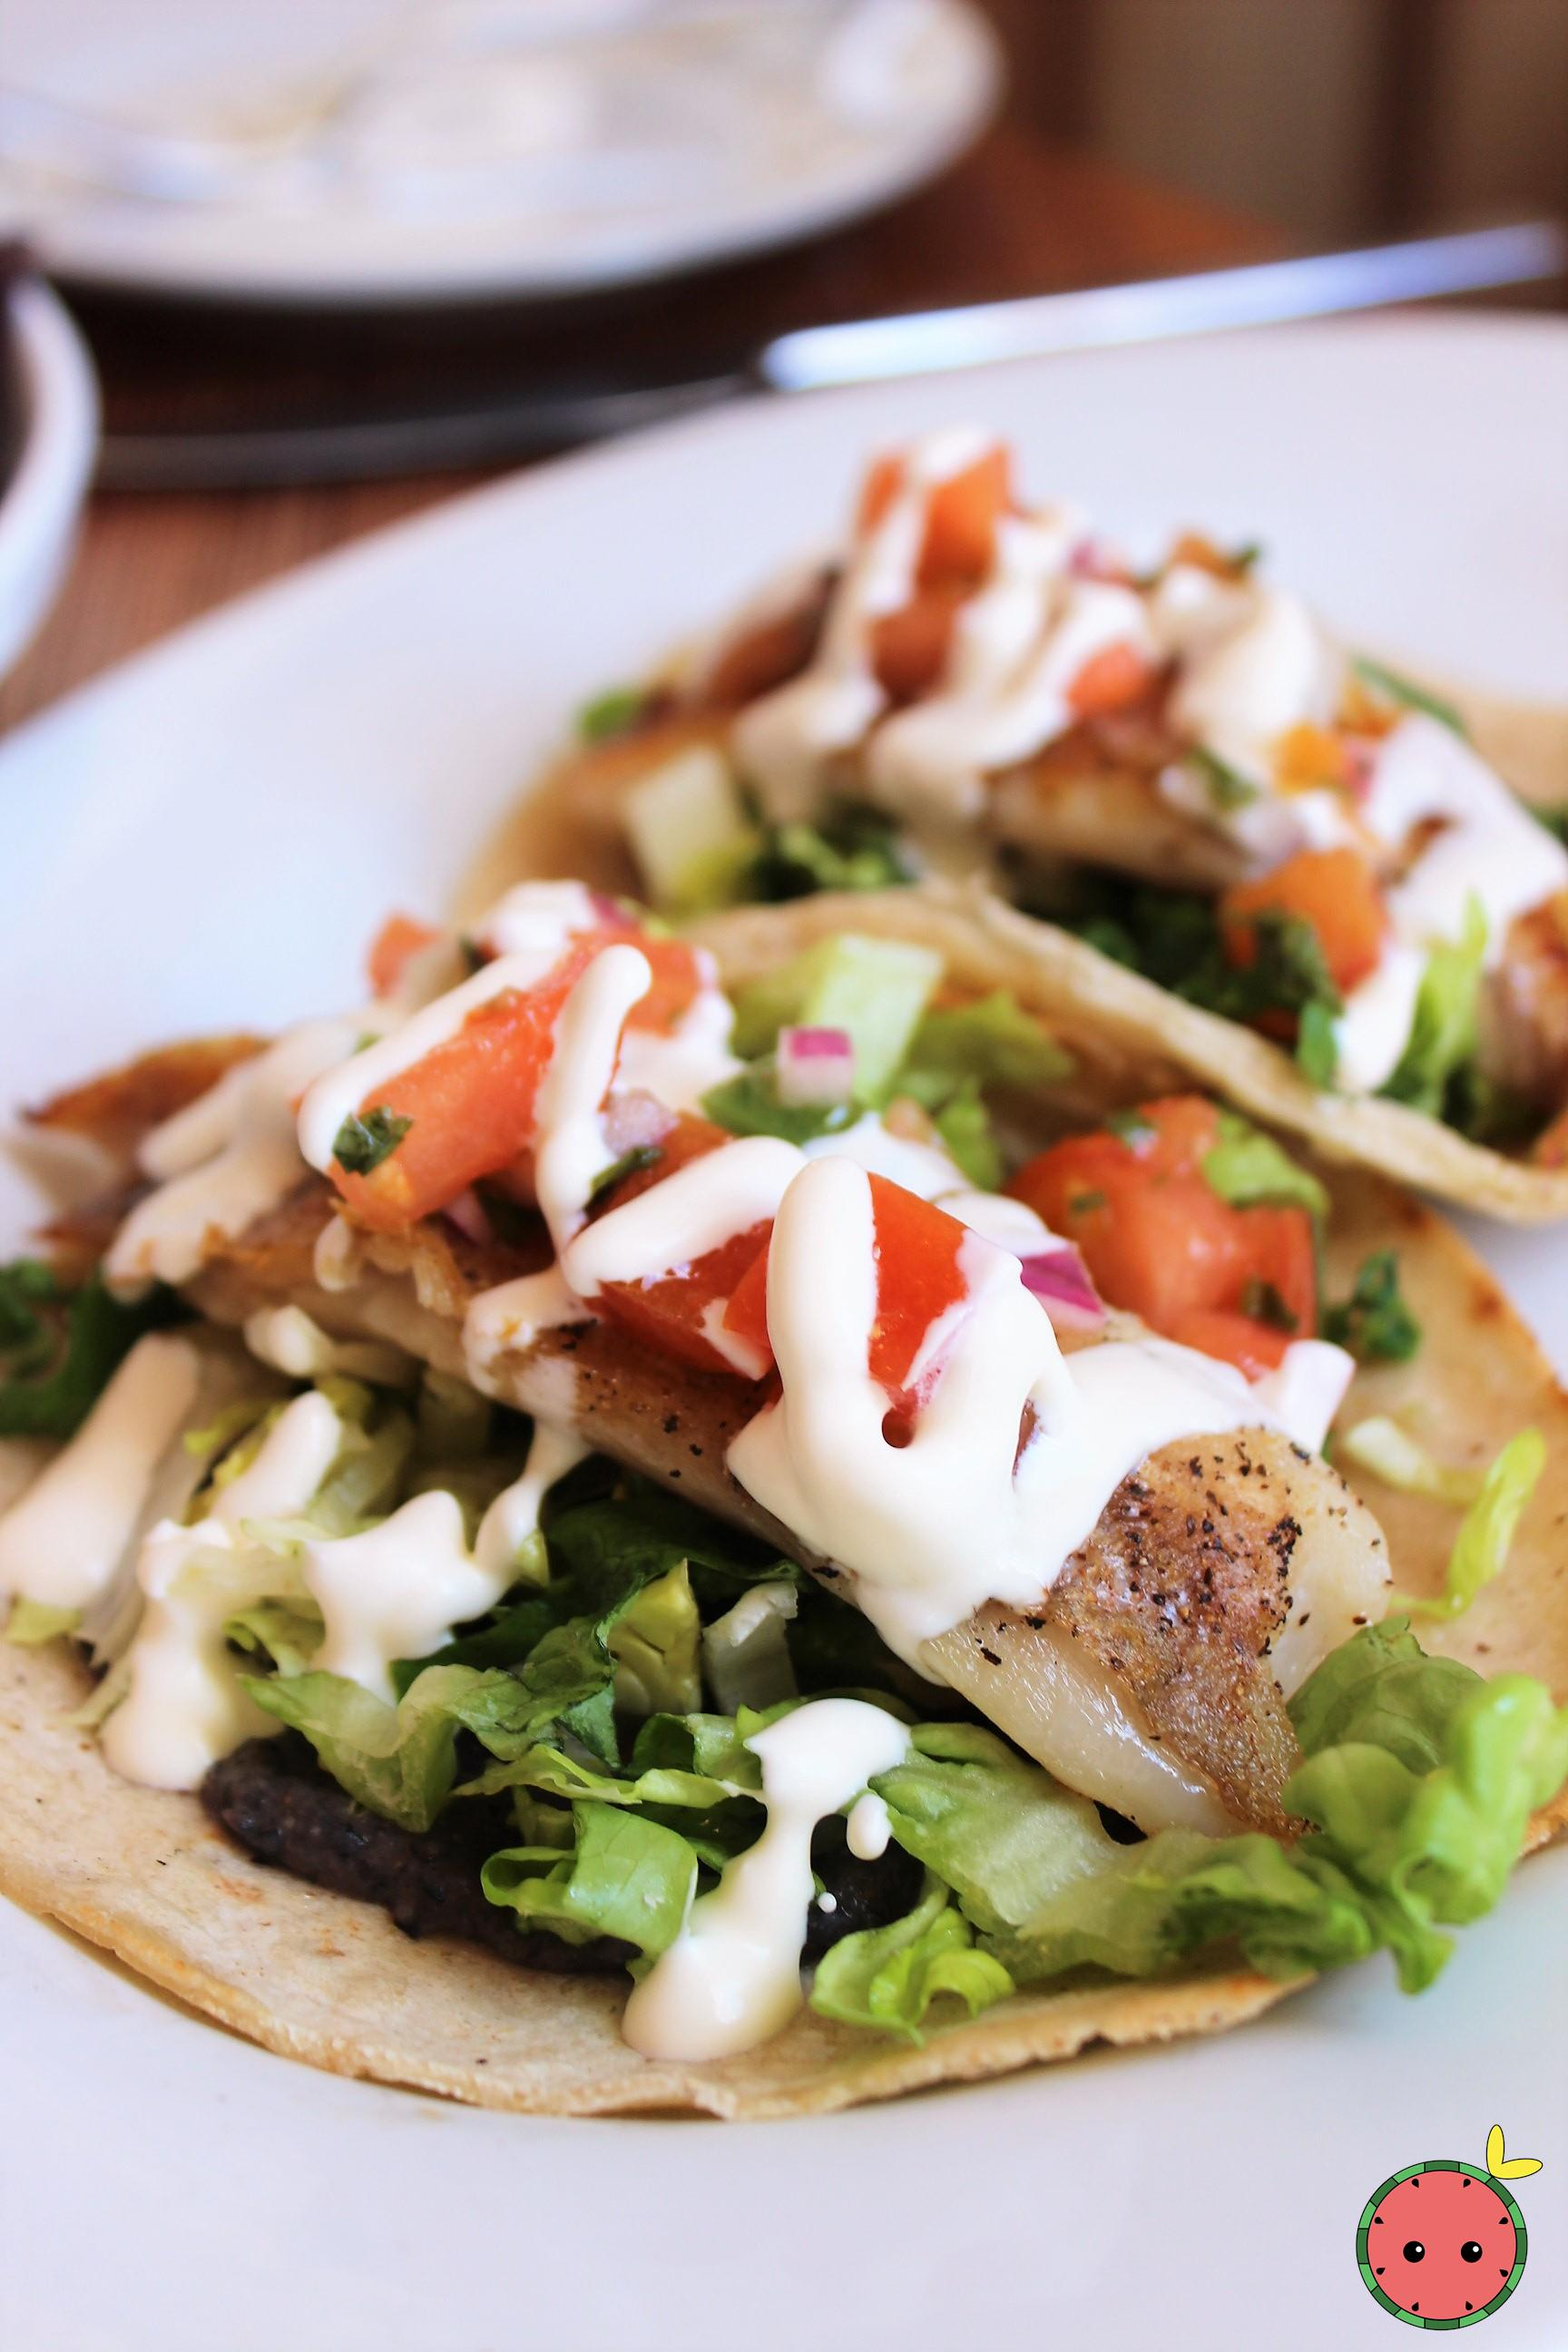 Seared Fish Taco with black bean sauce, lettuce, pico, avocado, and crema